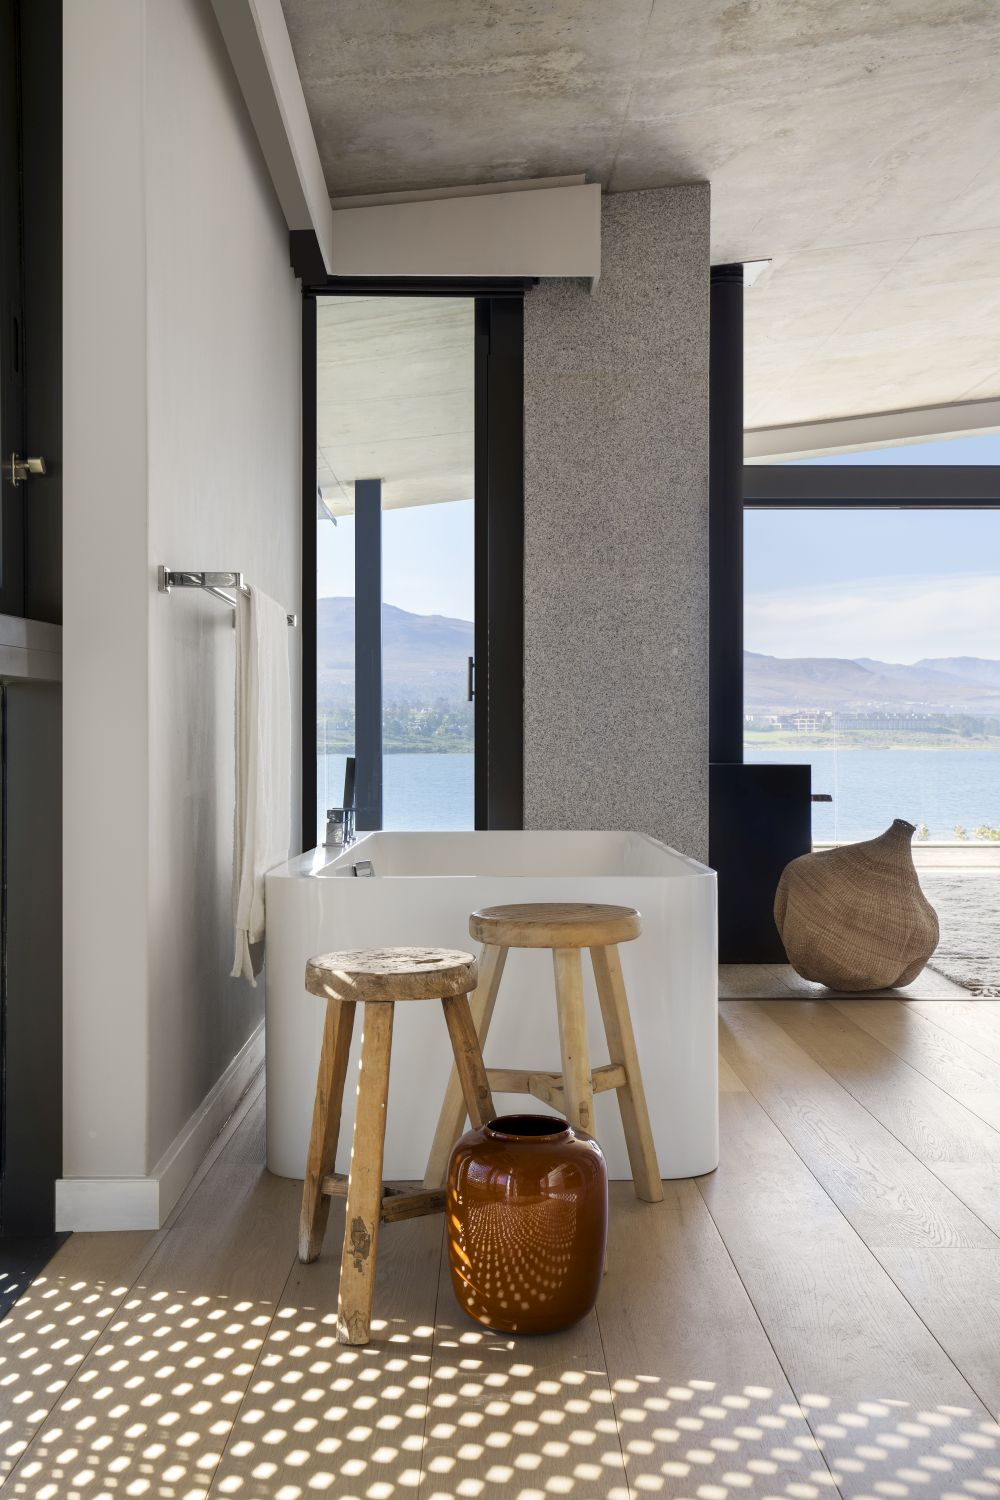 The bathrooms are designed to frame splendid views of the water as well and they're filled with natural light